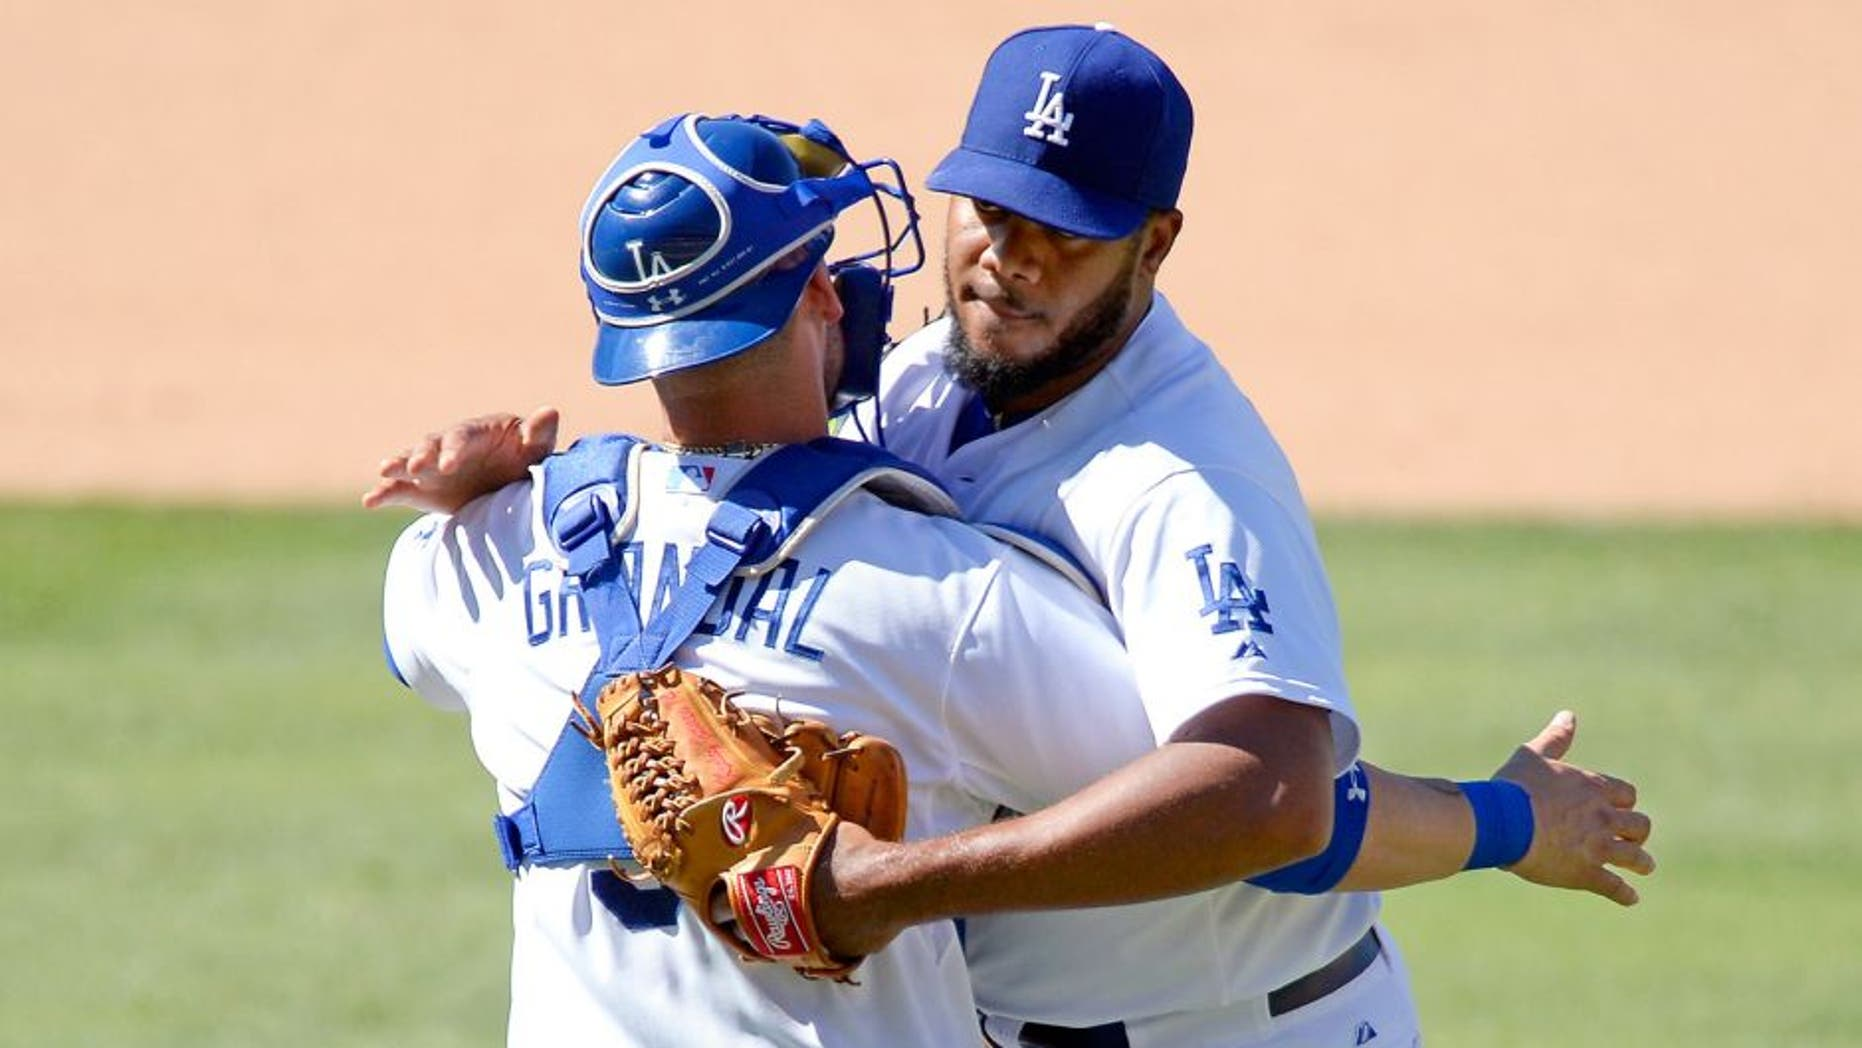 LOS ANGELES, CA - AUGUST 16: Closer Kenley Jansen #74 and catcher Yasmani Grandal #9 of the Los Angeles Dodgers celebrate after defeating the Cincinnati Reds, 2-1, at Dodger Stadium August 16, 2015, in Los Angeles, California. (Photo by Kevork Djansezian/Getty Images)